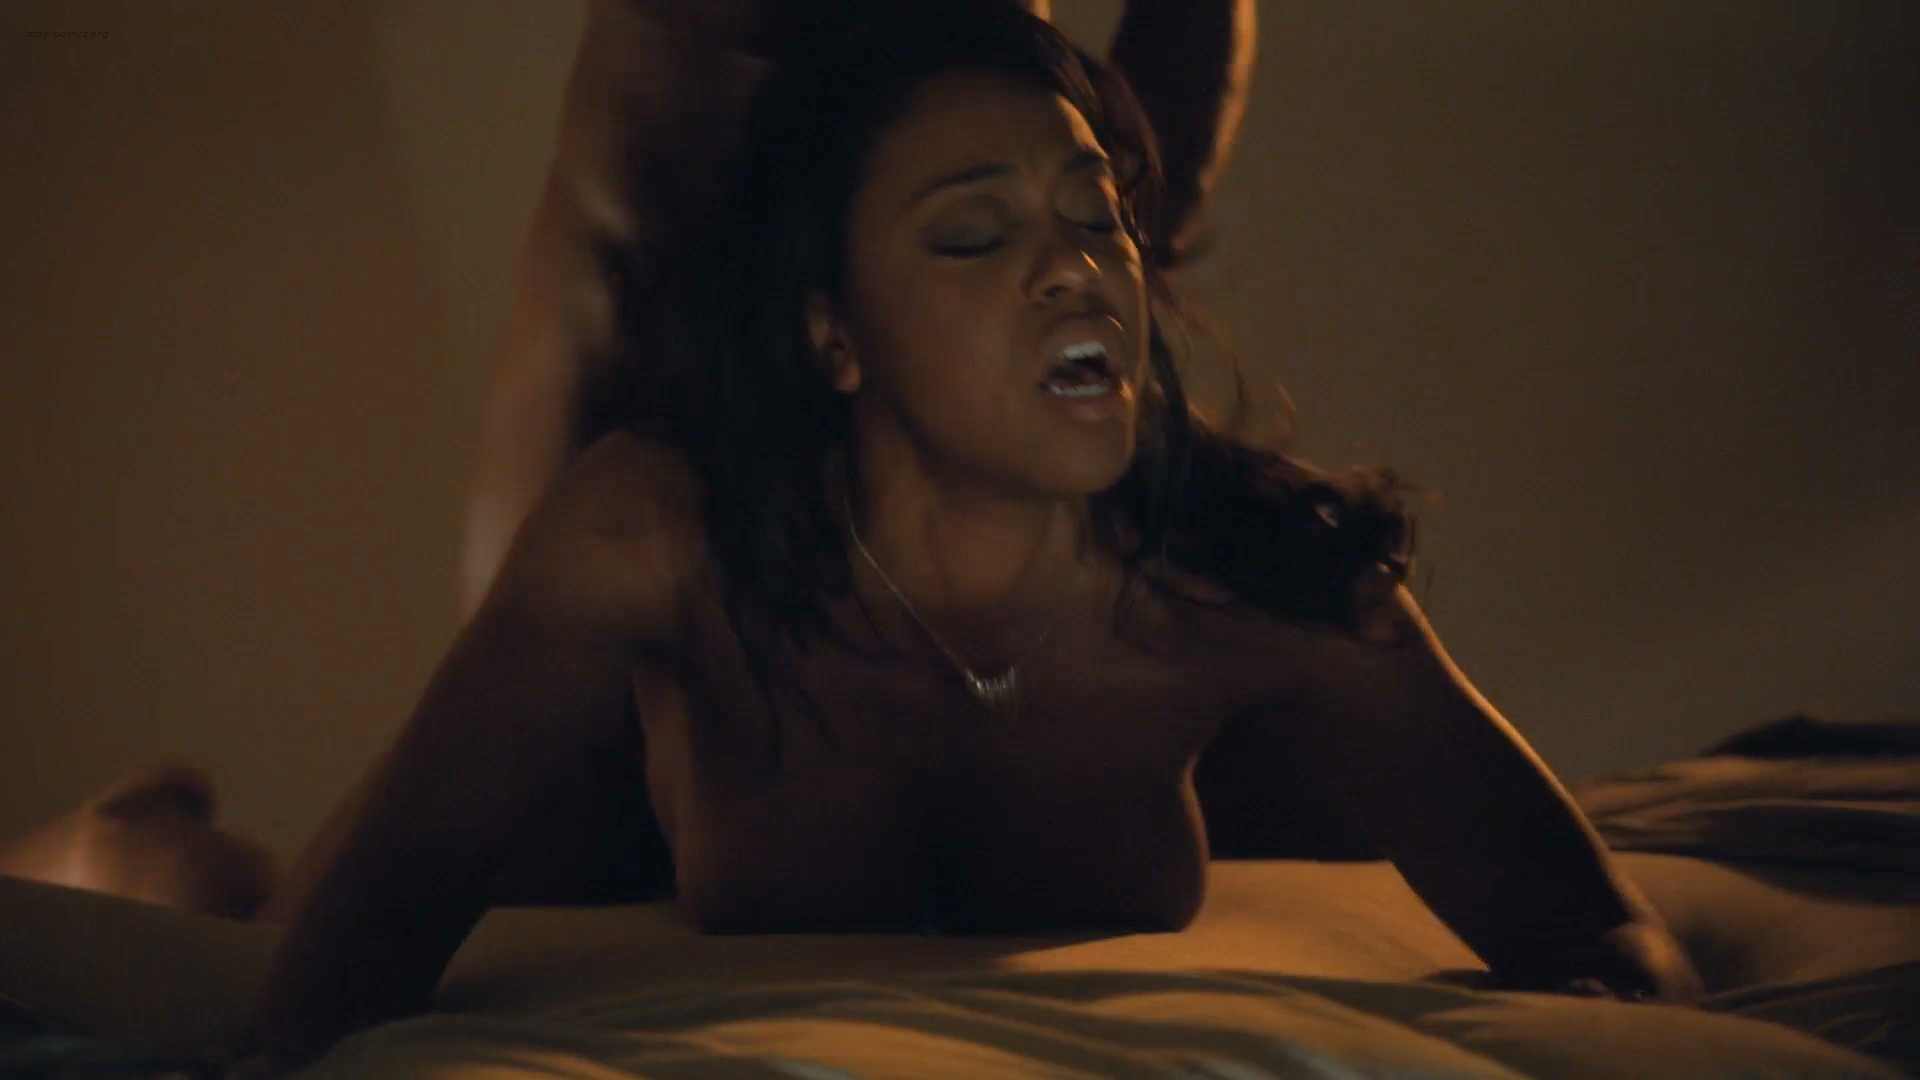 Dominique Perry nude sex and Nikki Vanderdyz nude - Insecure (2016) s1e8 HD 1080p (13)